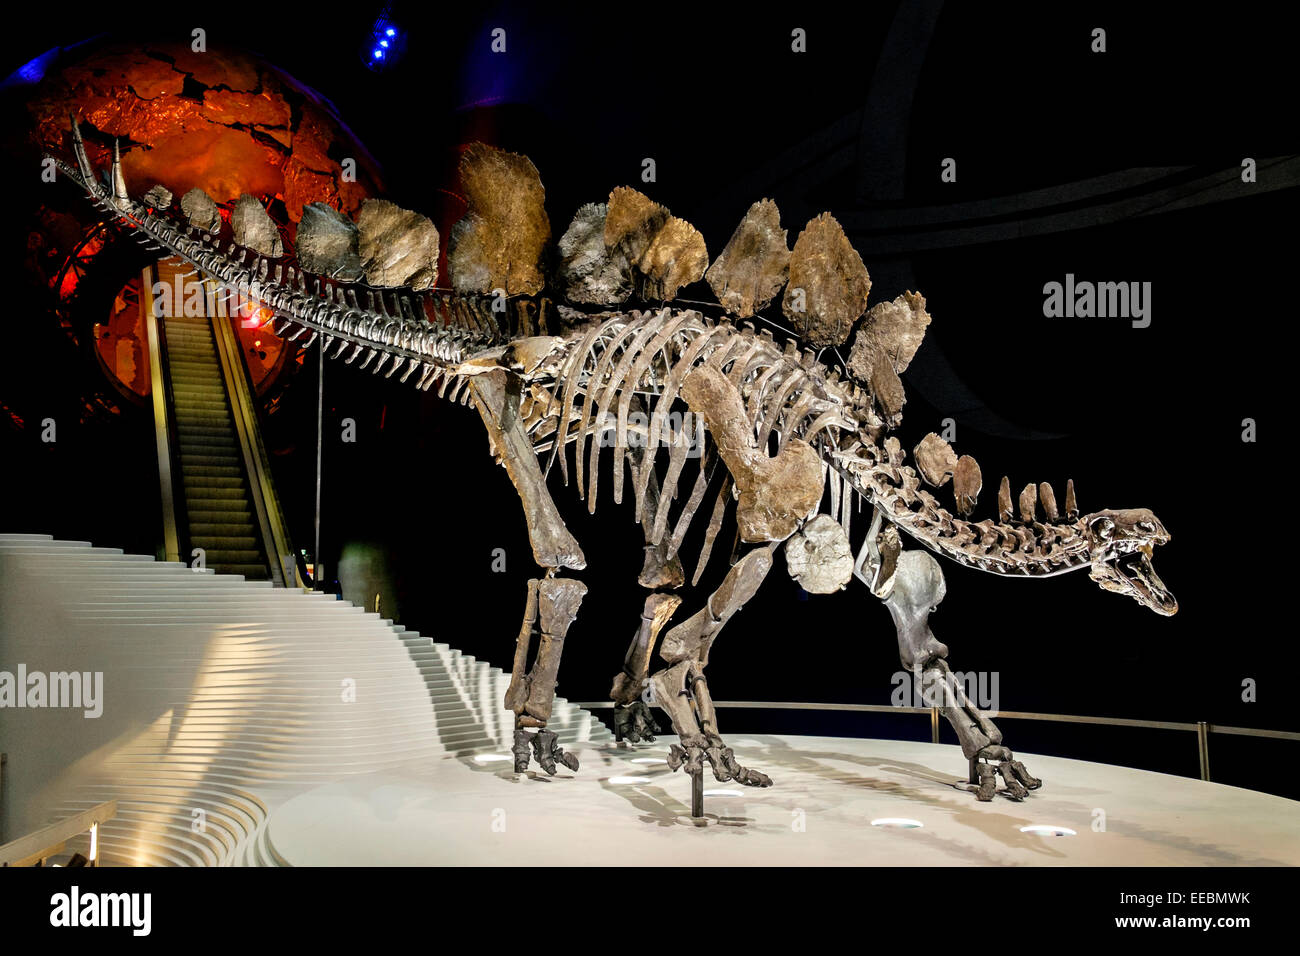 Sophie the Stegosaurus dinosaur fossil skeleton at The Natural History Museum London - Stock Image